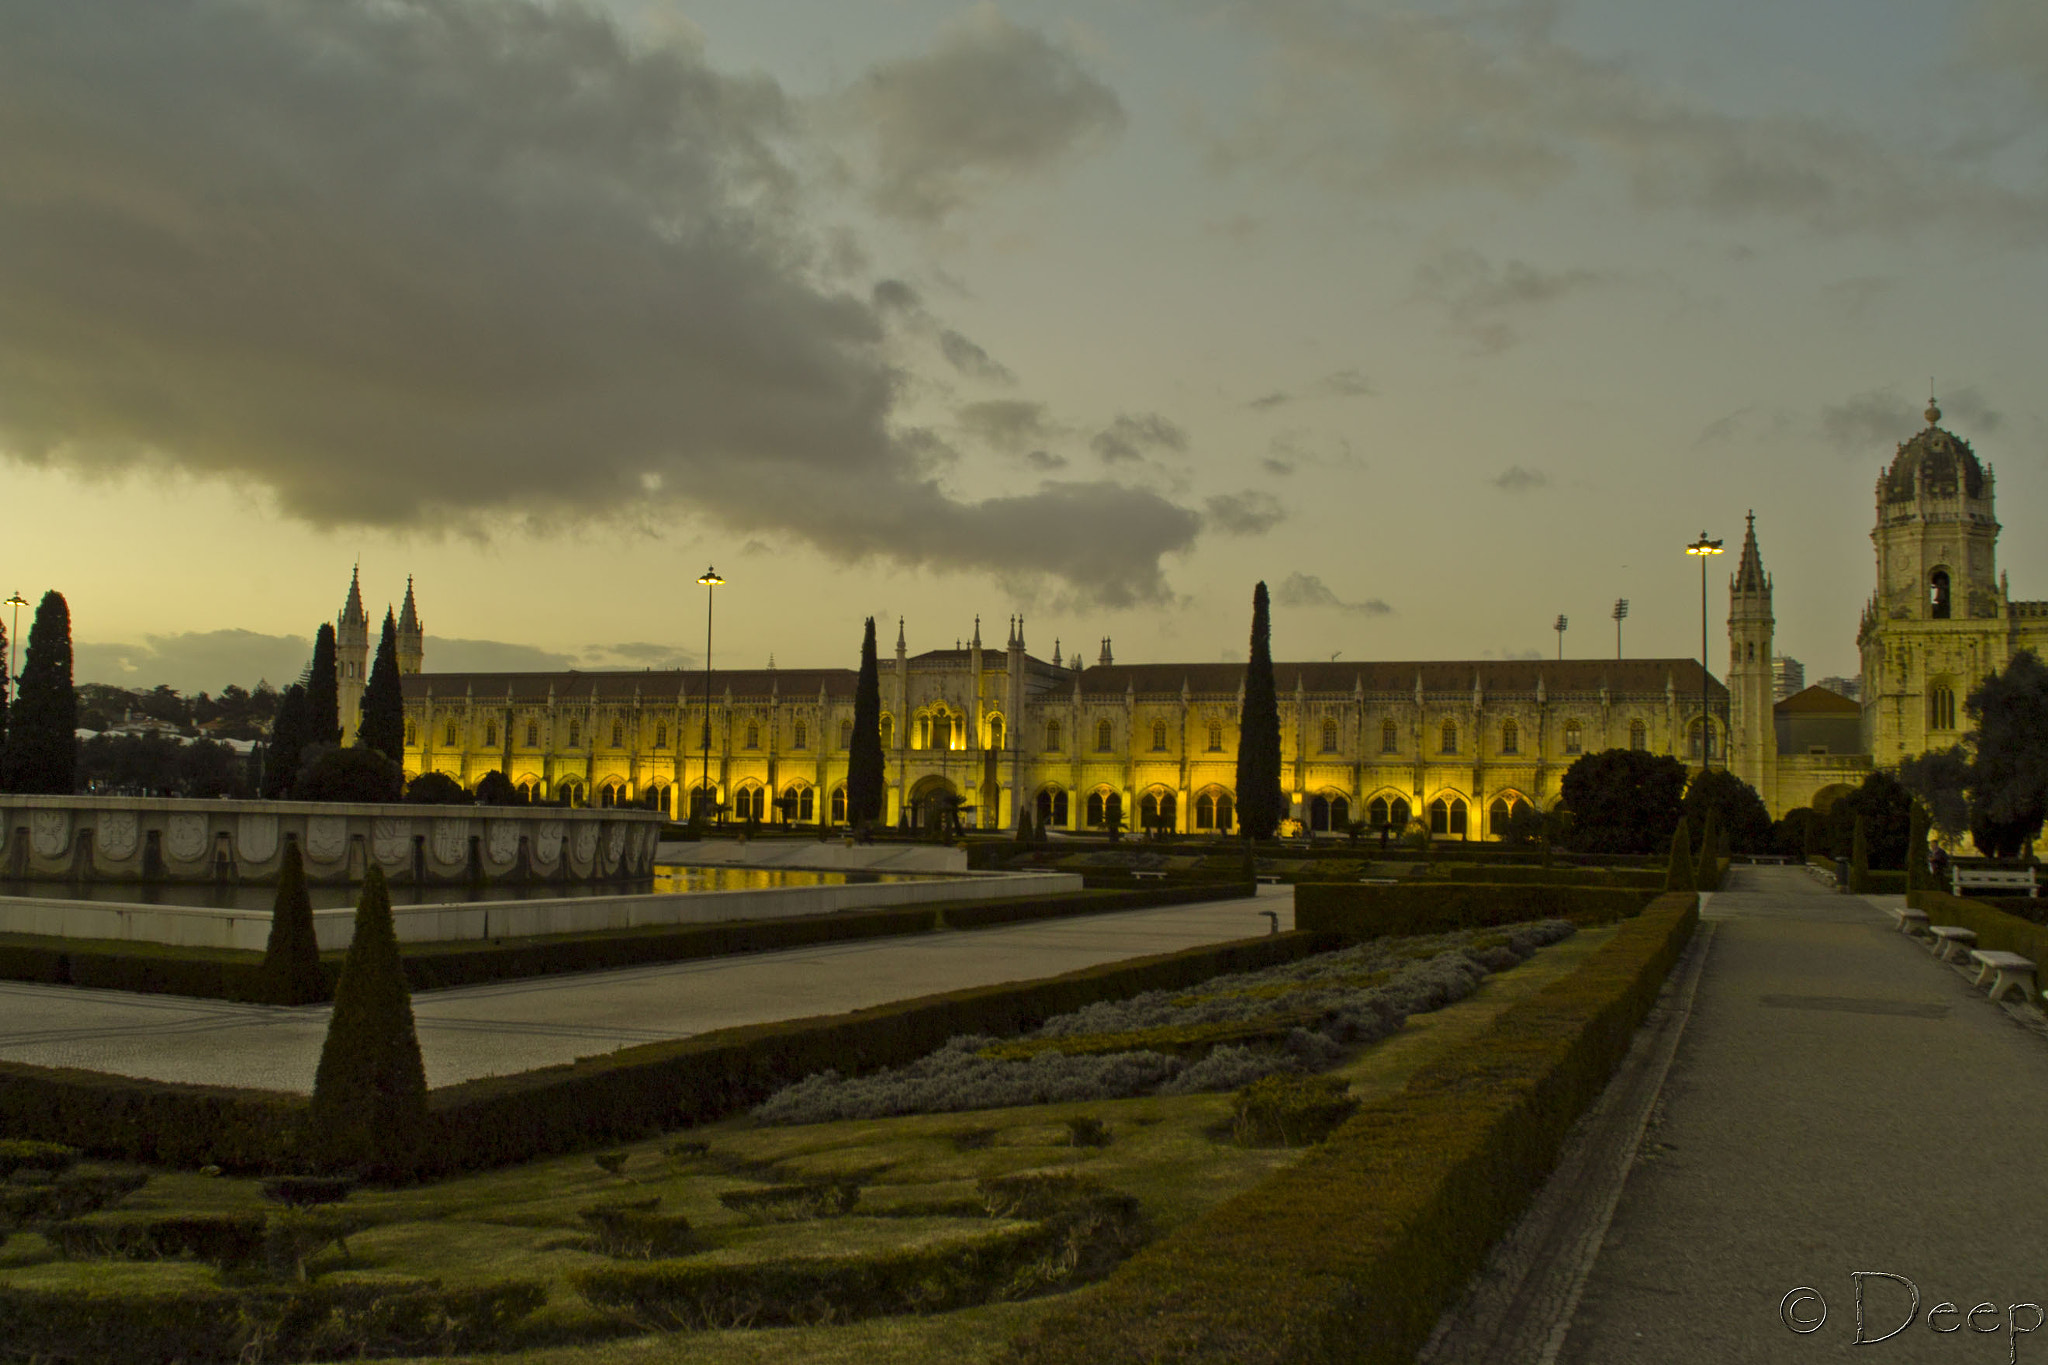 Photograph Mosteiro dos Jeronimos in Belem,Lisbon by DeepInDraw on 500px